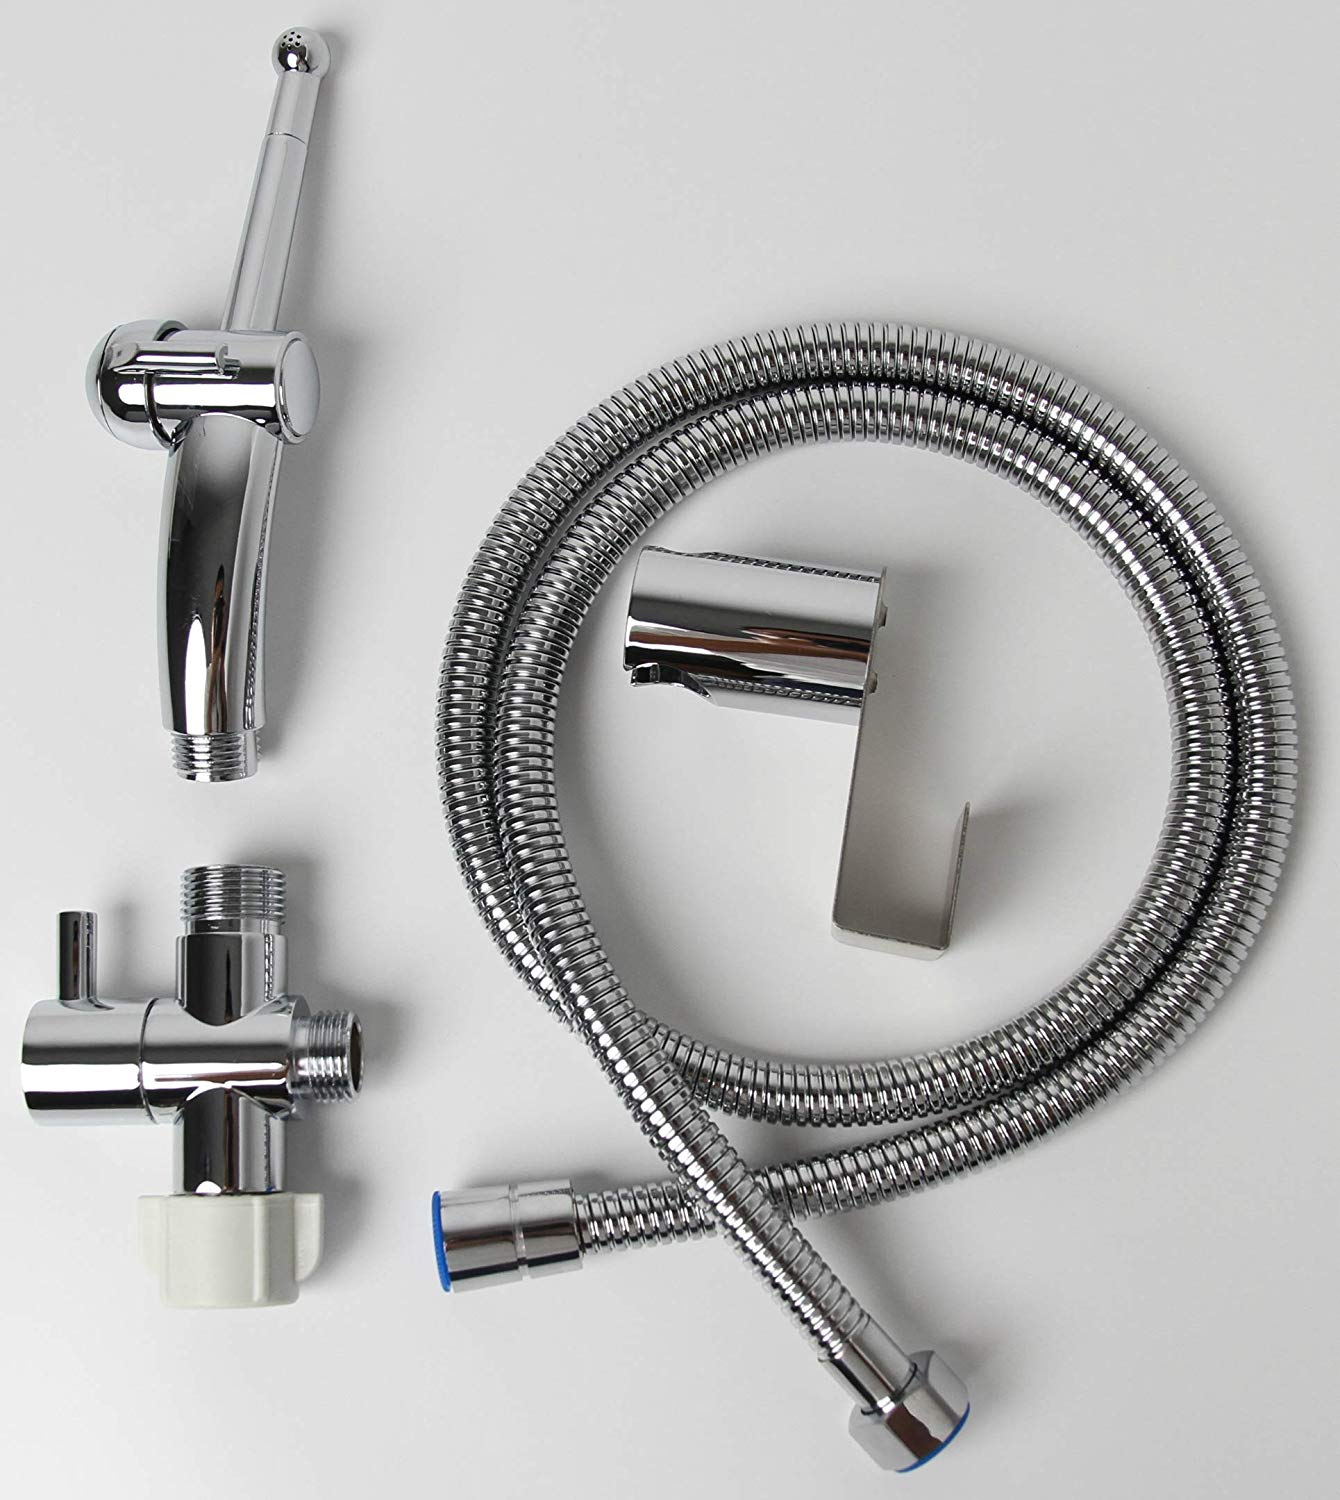 bidet sprayer components